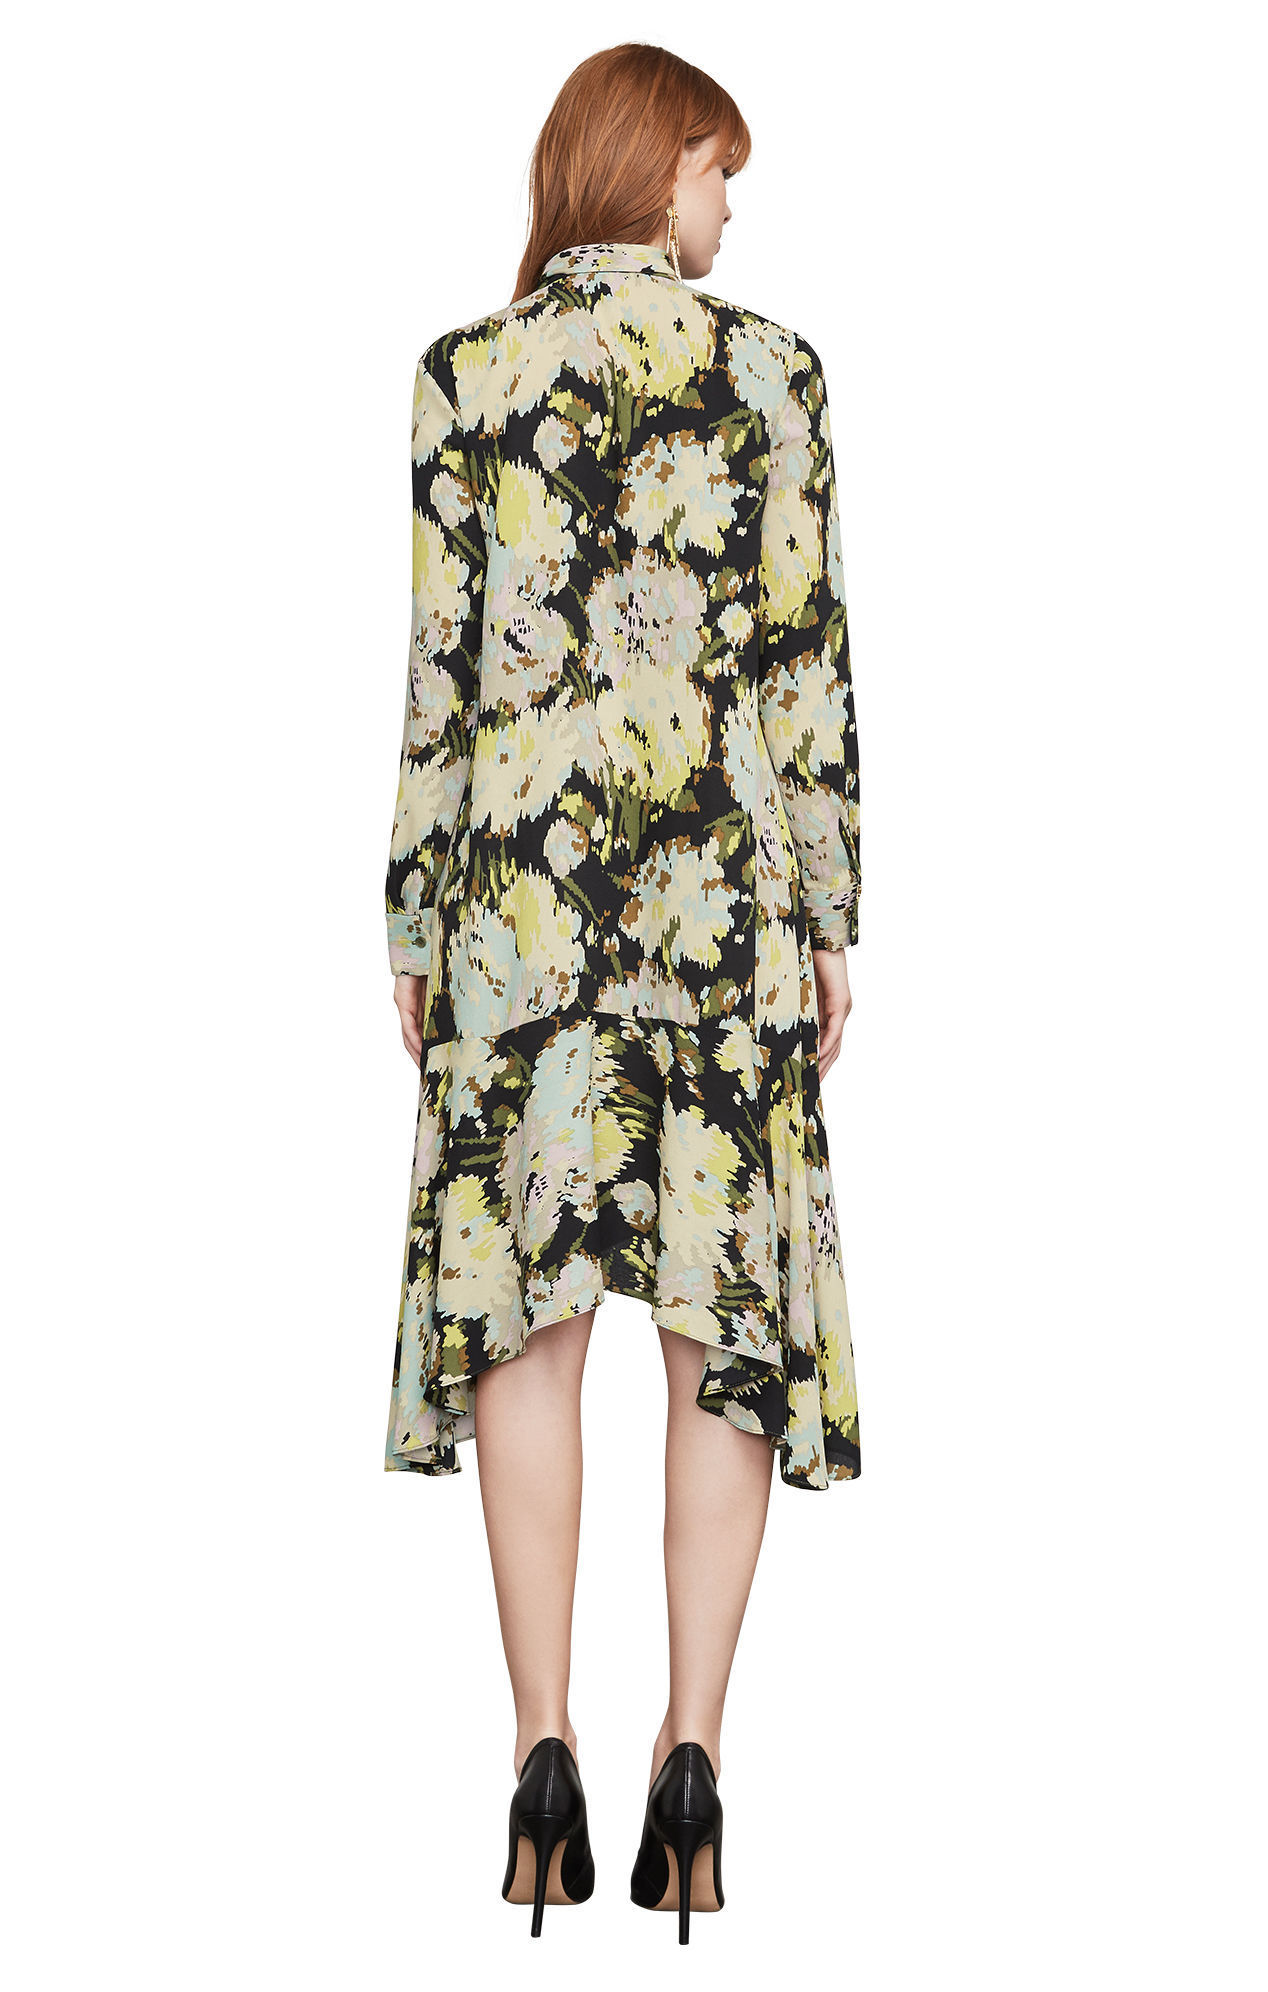 【BCBG MAXAZRIA】ドレス♪ Flora Watercolor Mums Dress